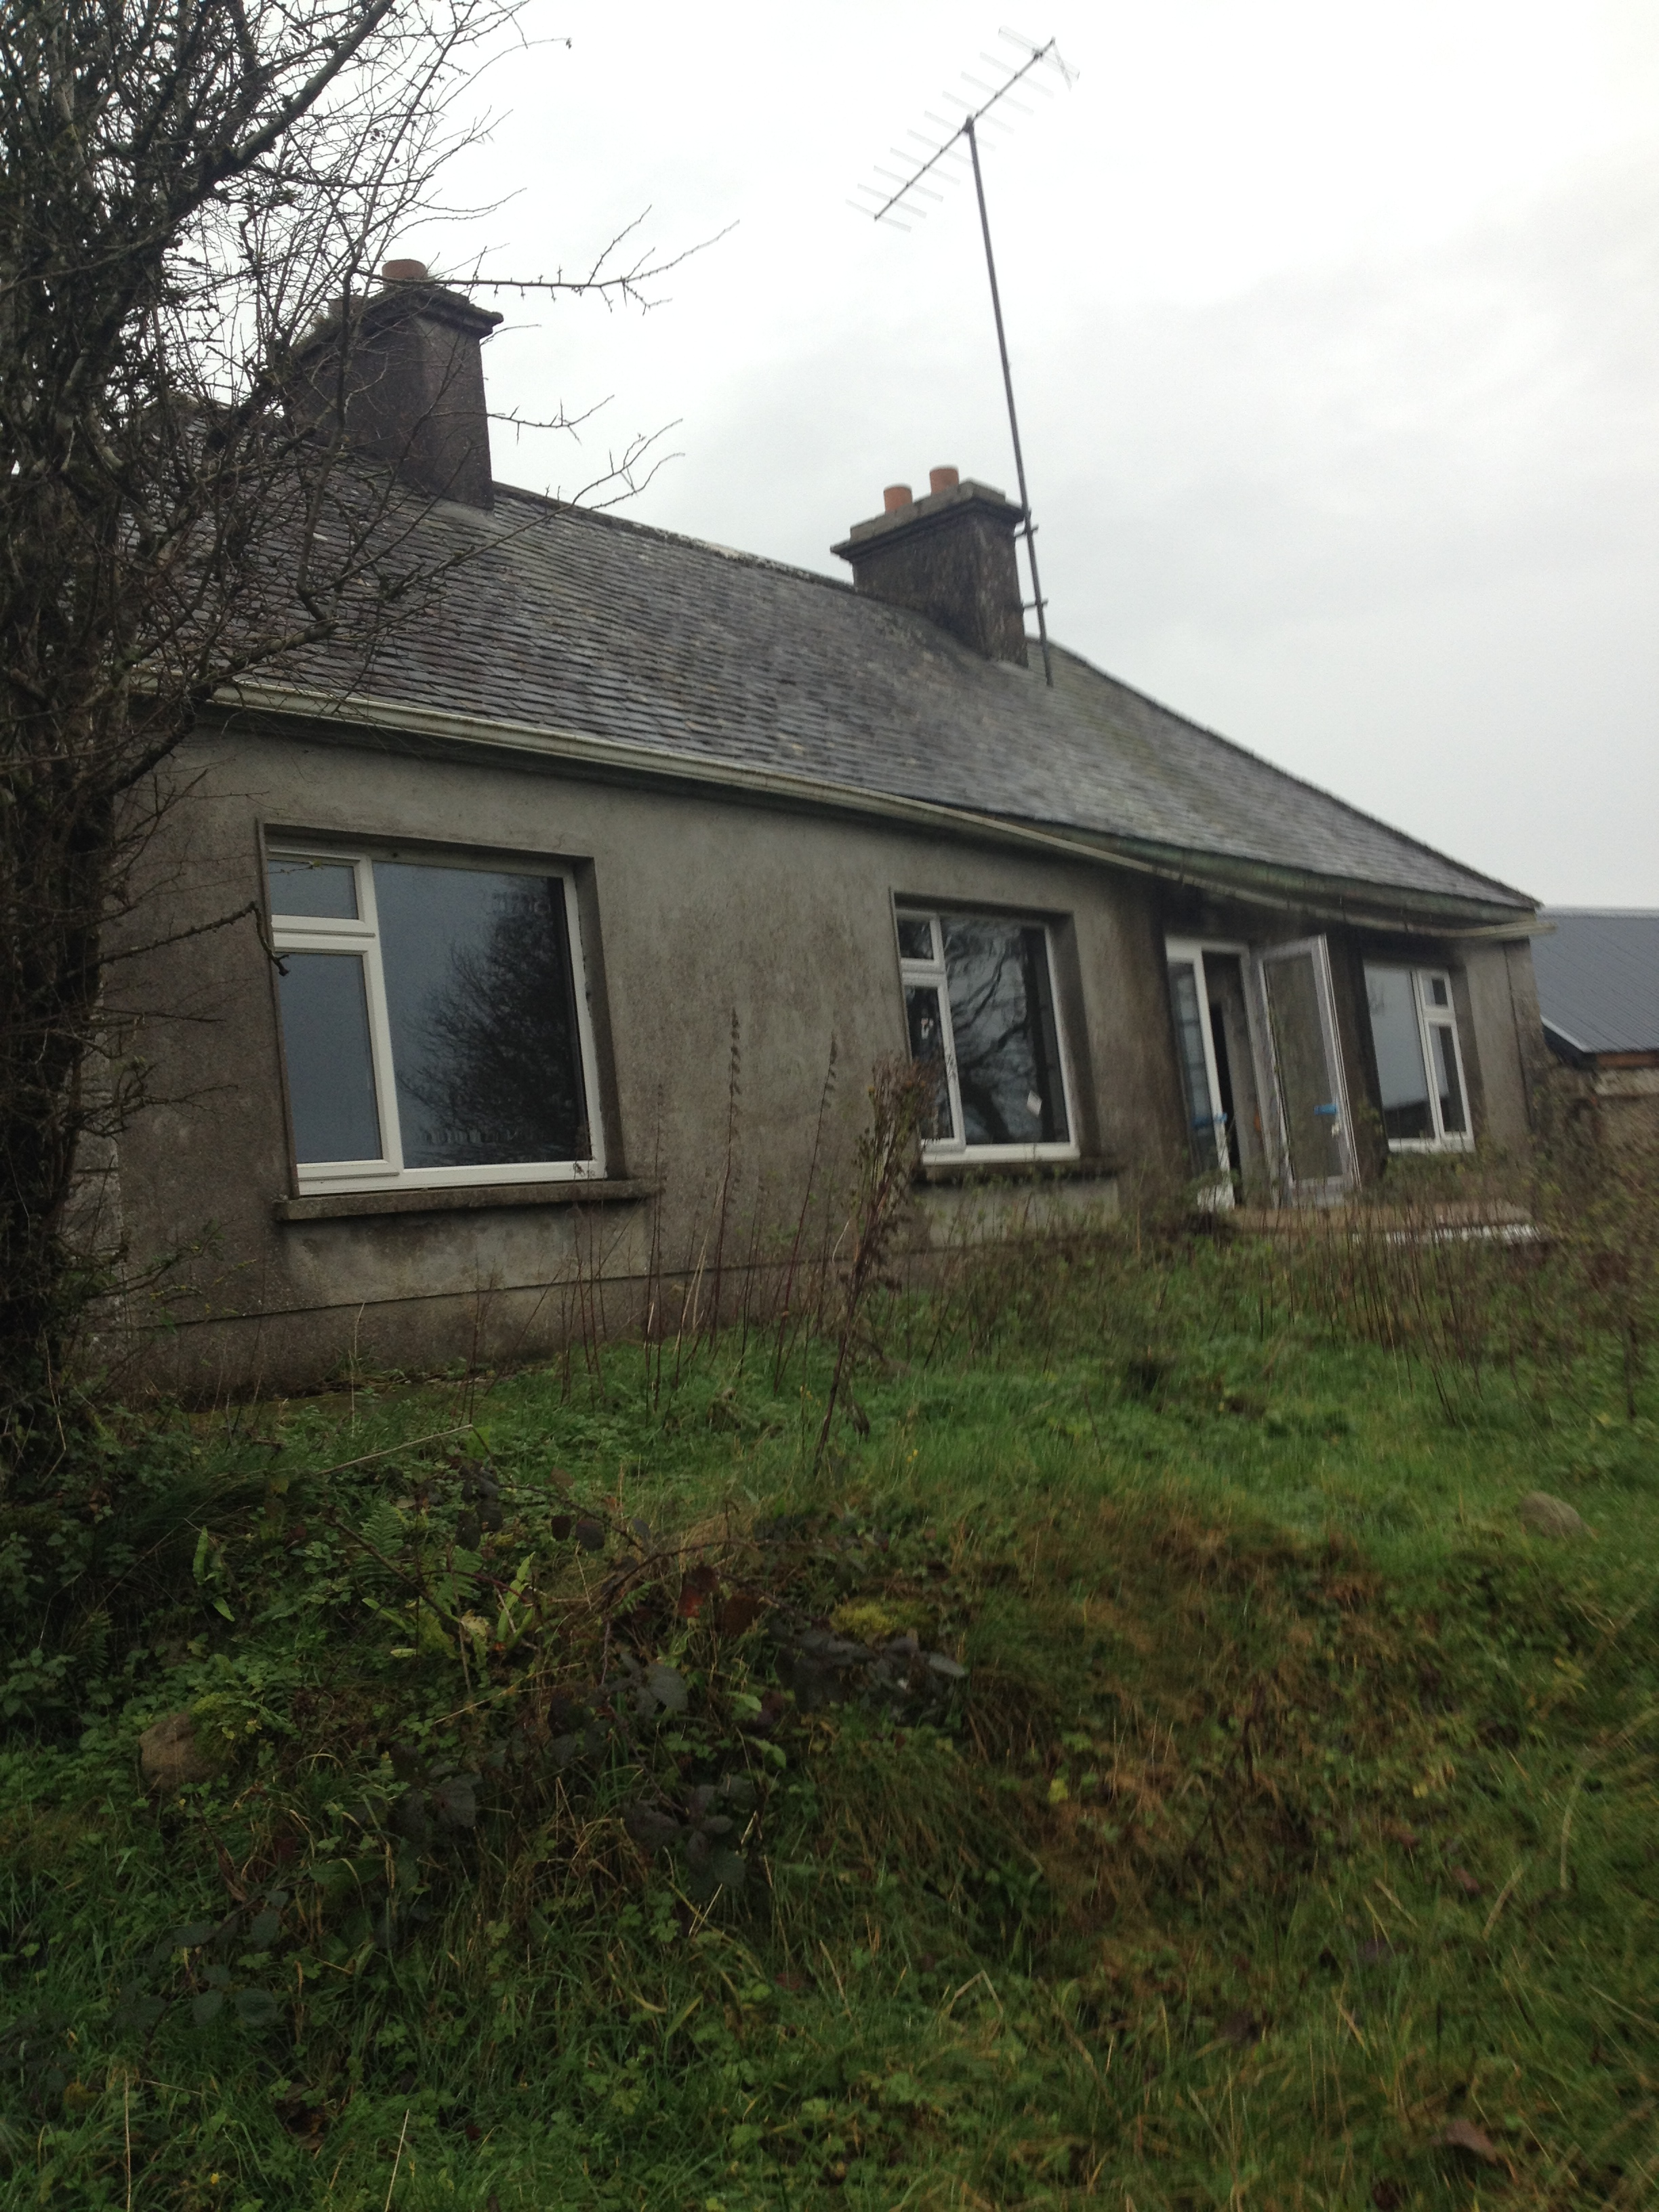 2 Bedroom House, Kinaffe, Swinford